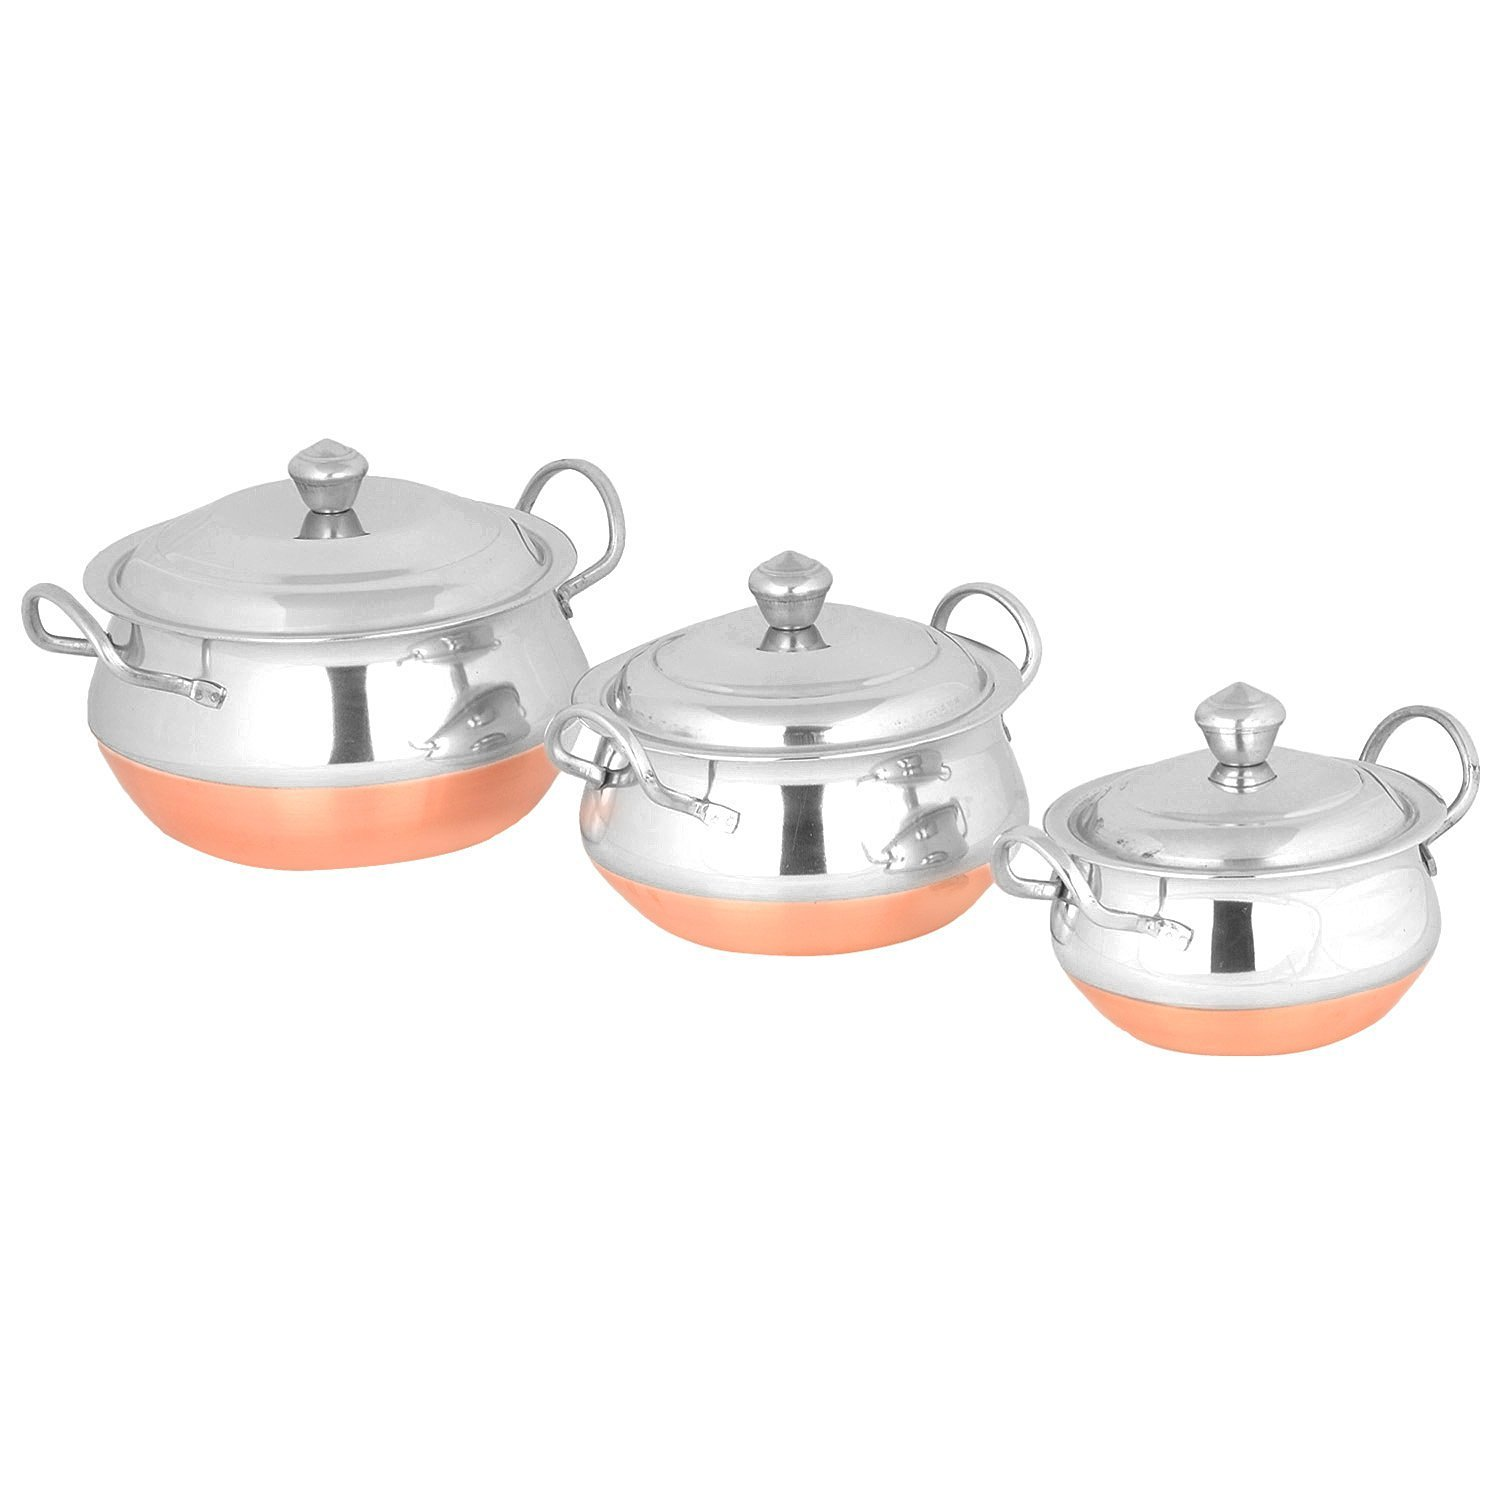 Indian Gifts Store PREMIUM Stainless Steel 3Pcs Handi Cookware Set - Copper Bottom